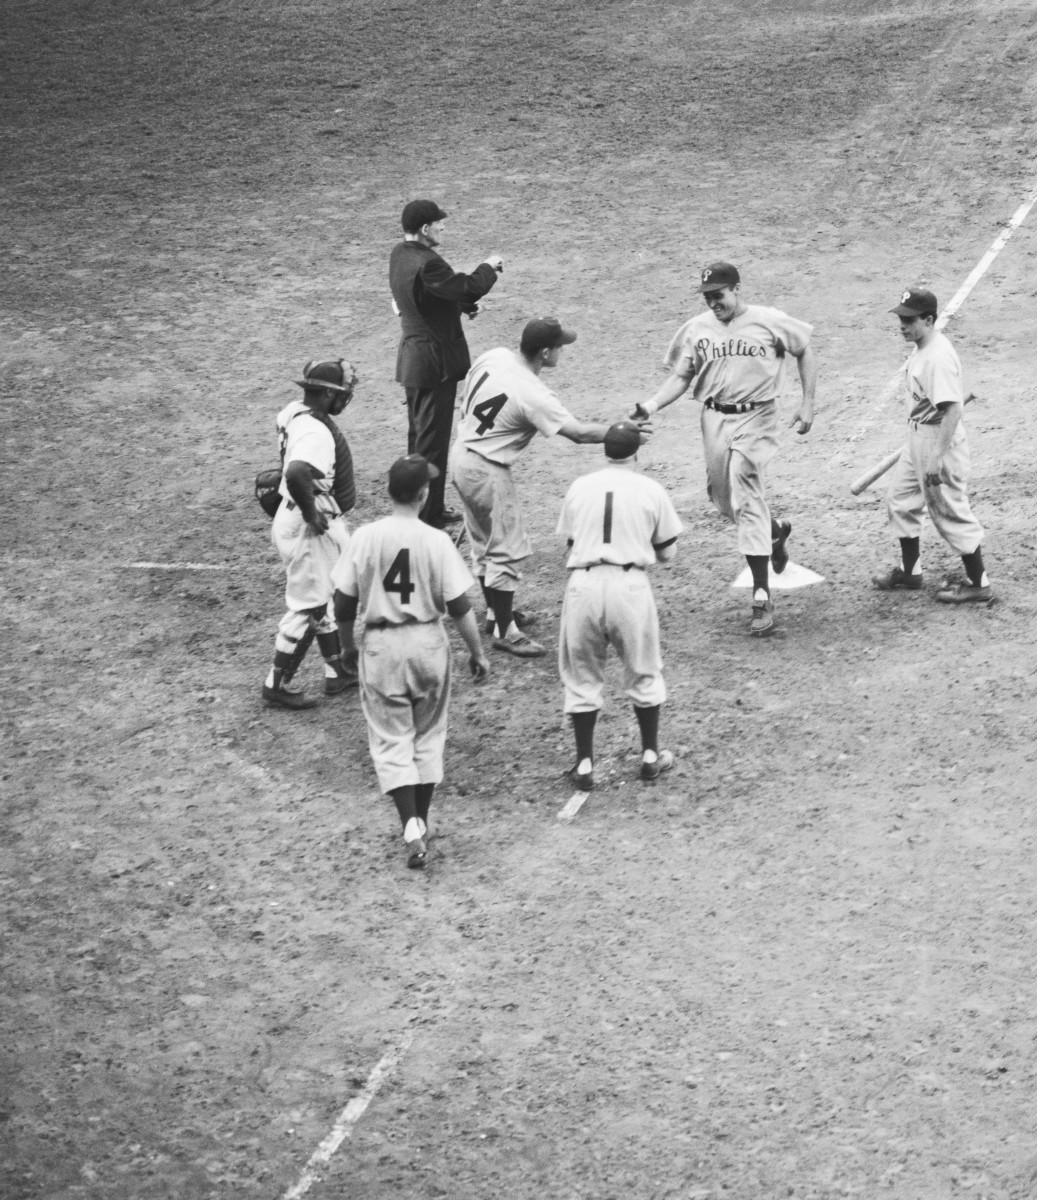 Philadelphia's Dick Sisler hits the game-winning, three-run home run in the top of the 10th inning against the Brooklyn Dodgers on Oct. 1, 1950 to clinch the pennant for the Phillies on the last day of the regular season. Photo: Bettman/Getty Images